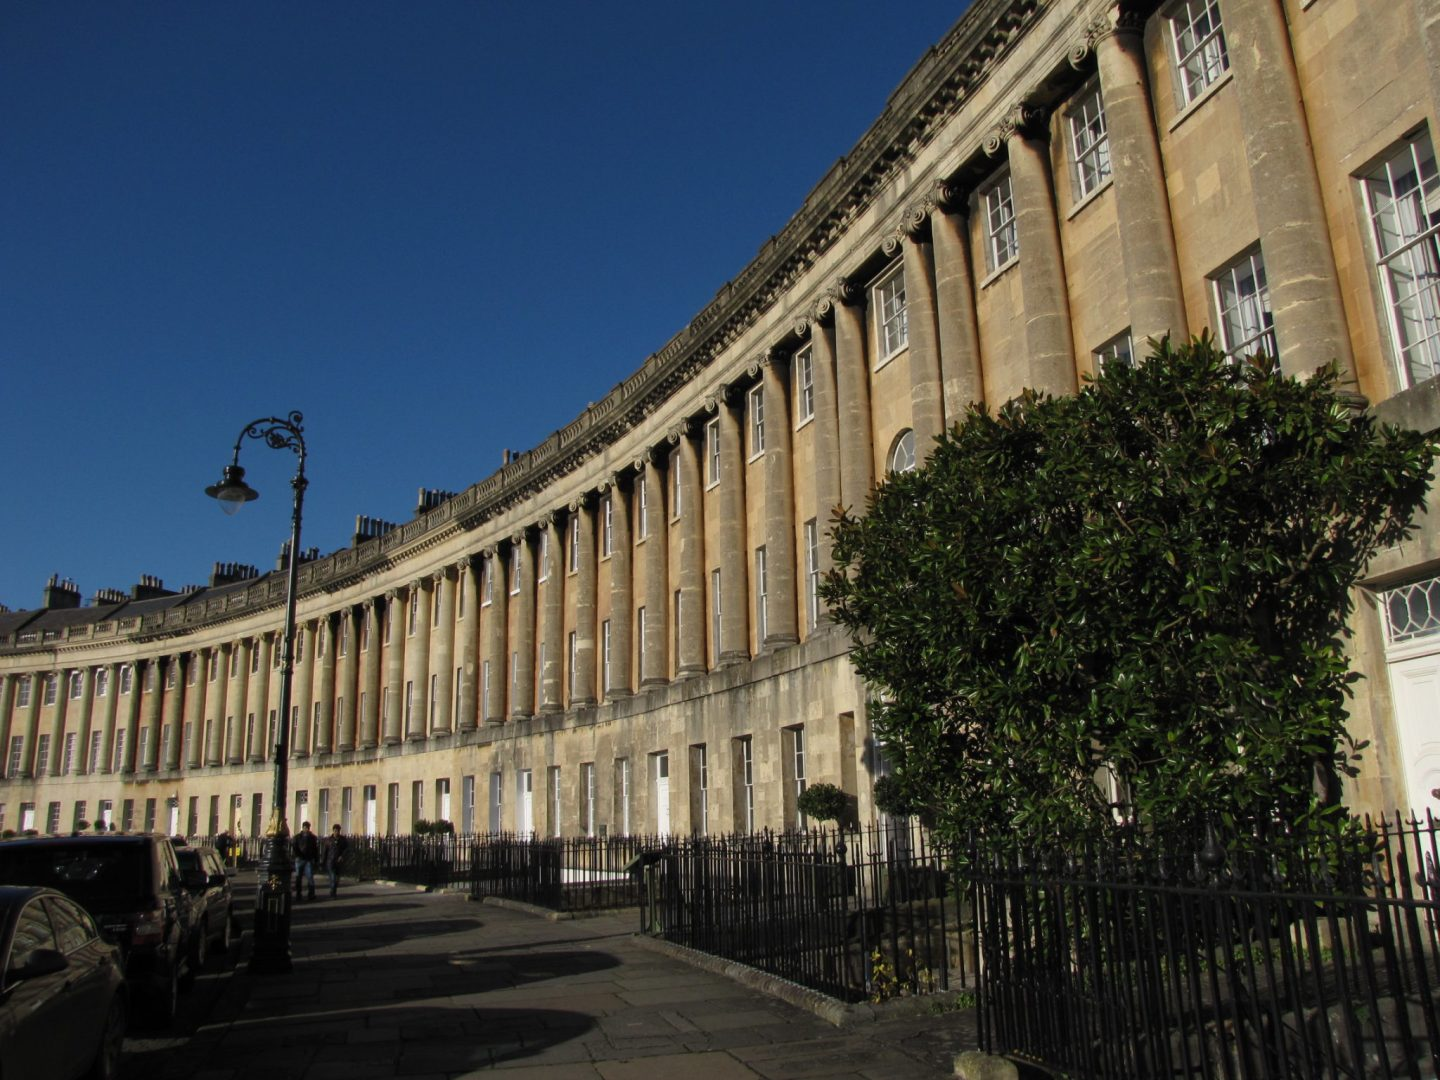 Exterior of the Royal Crescent Hotel, Bath